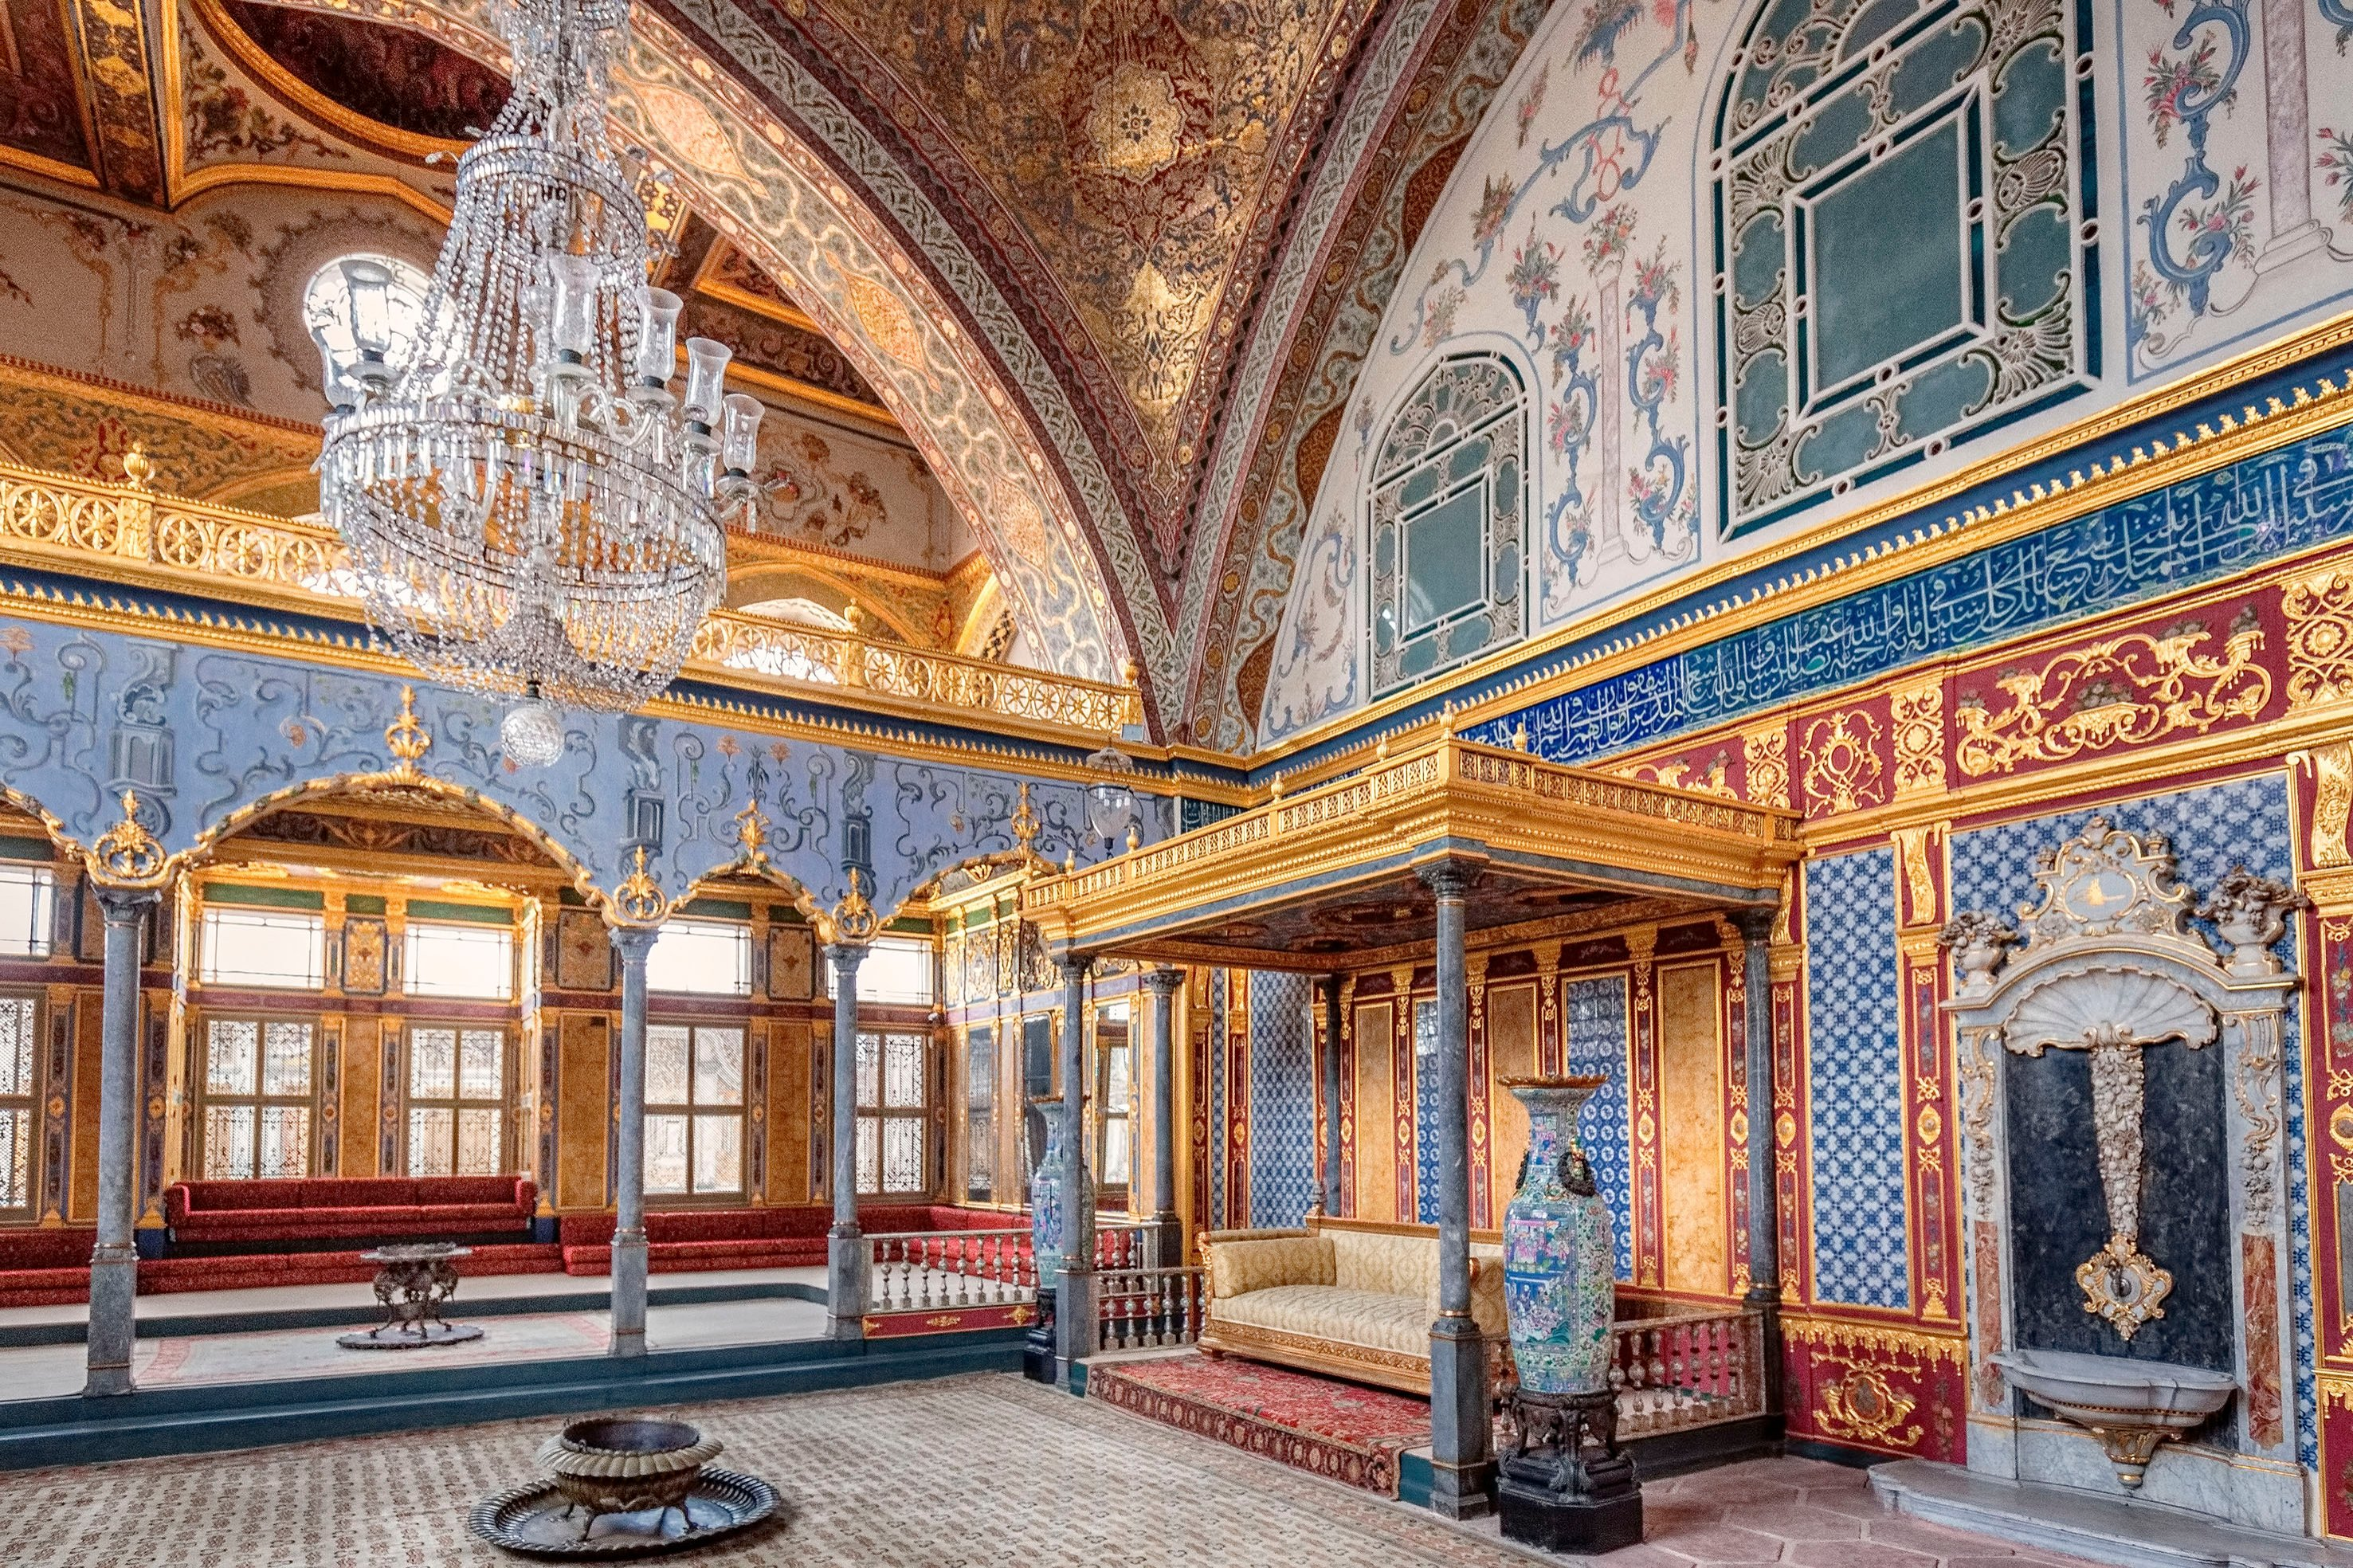 Topkapı Palace was converted into a museum and opened for visitors in 1924. (iStock Photo)